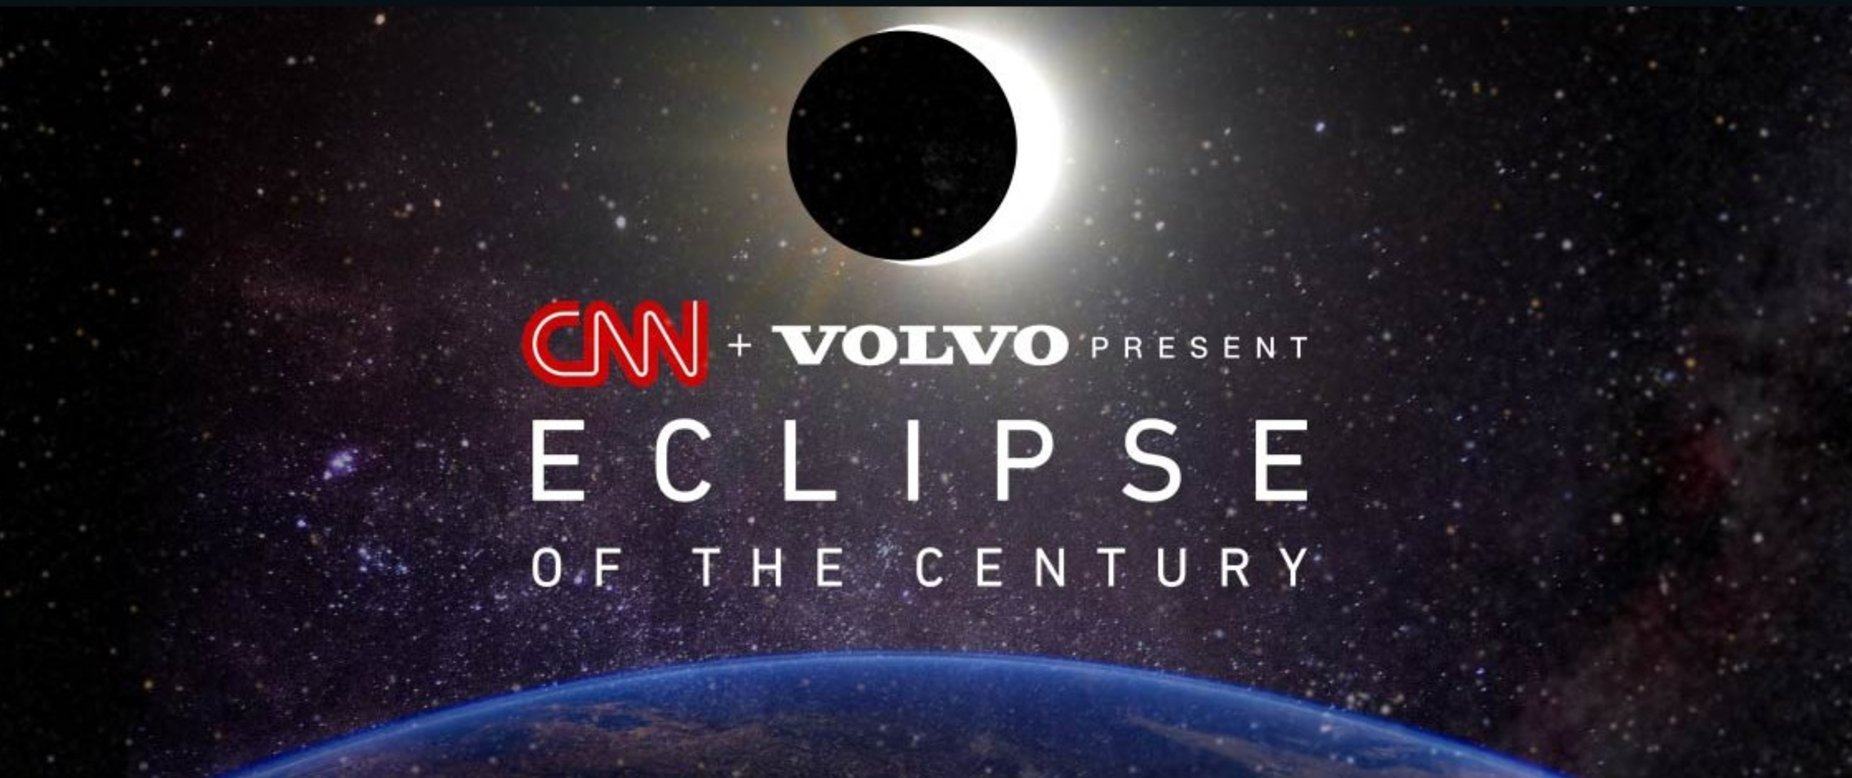 How to watch 'The Eclipse of the Century' in virtual reality #Eclipse2017 #CNNeclipse https://t.co/uoxxI6TZtJ https://t.co/hEtFXCEpW5